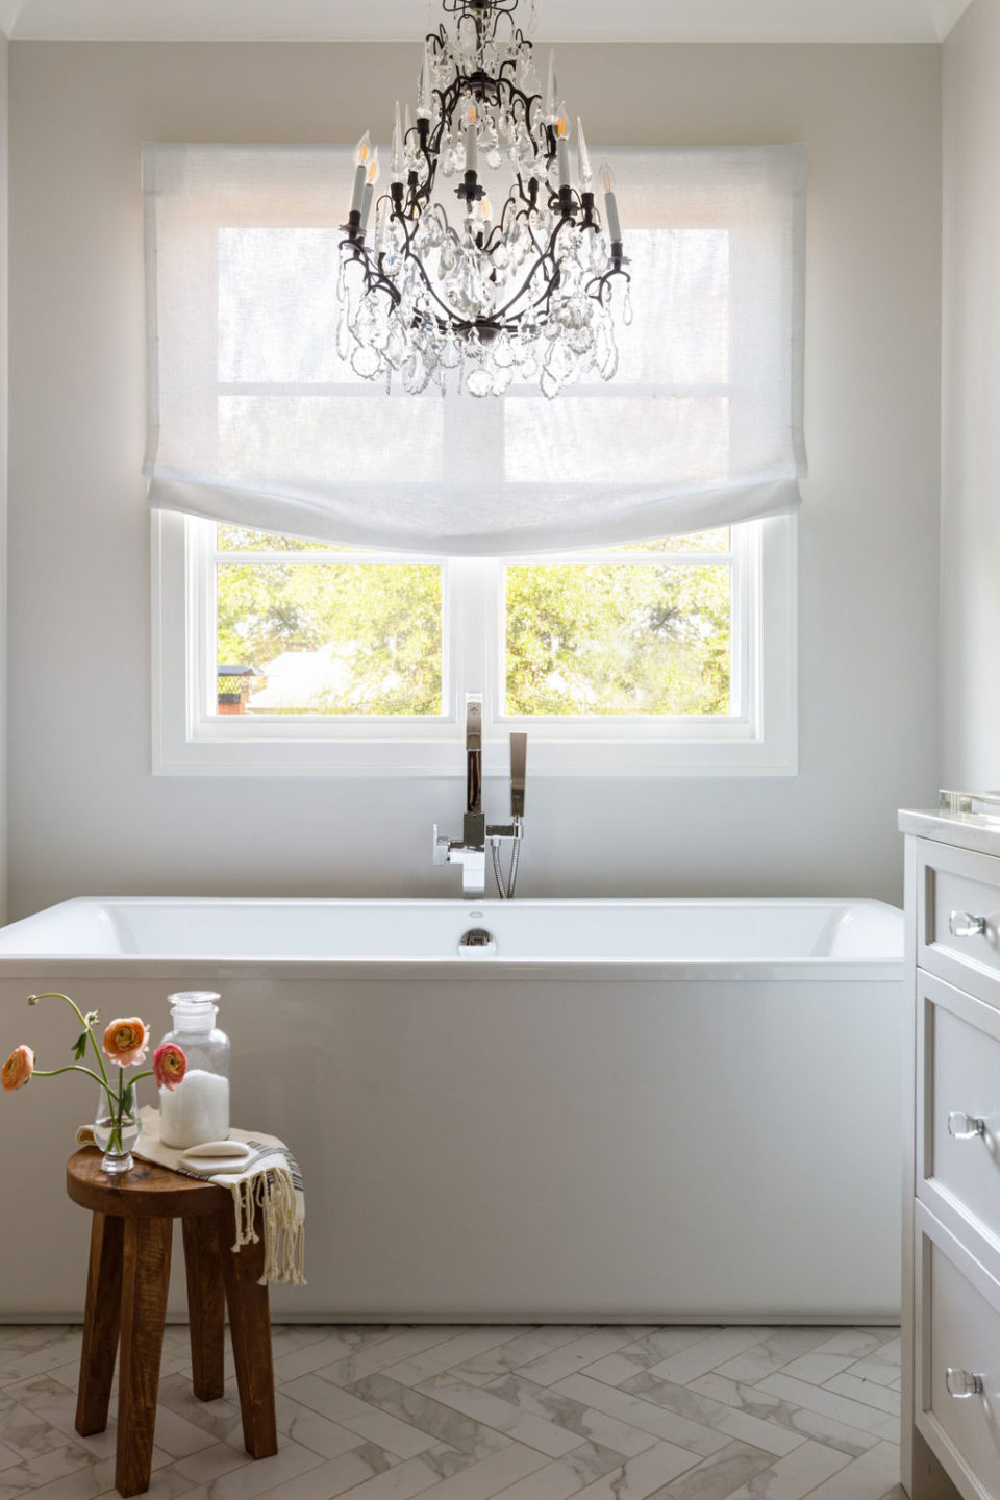 Serene and timeless white bath with soaking tub, crystal chandelier, and linen shade - design by Michael Del Piero.